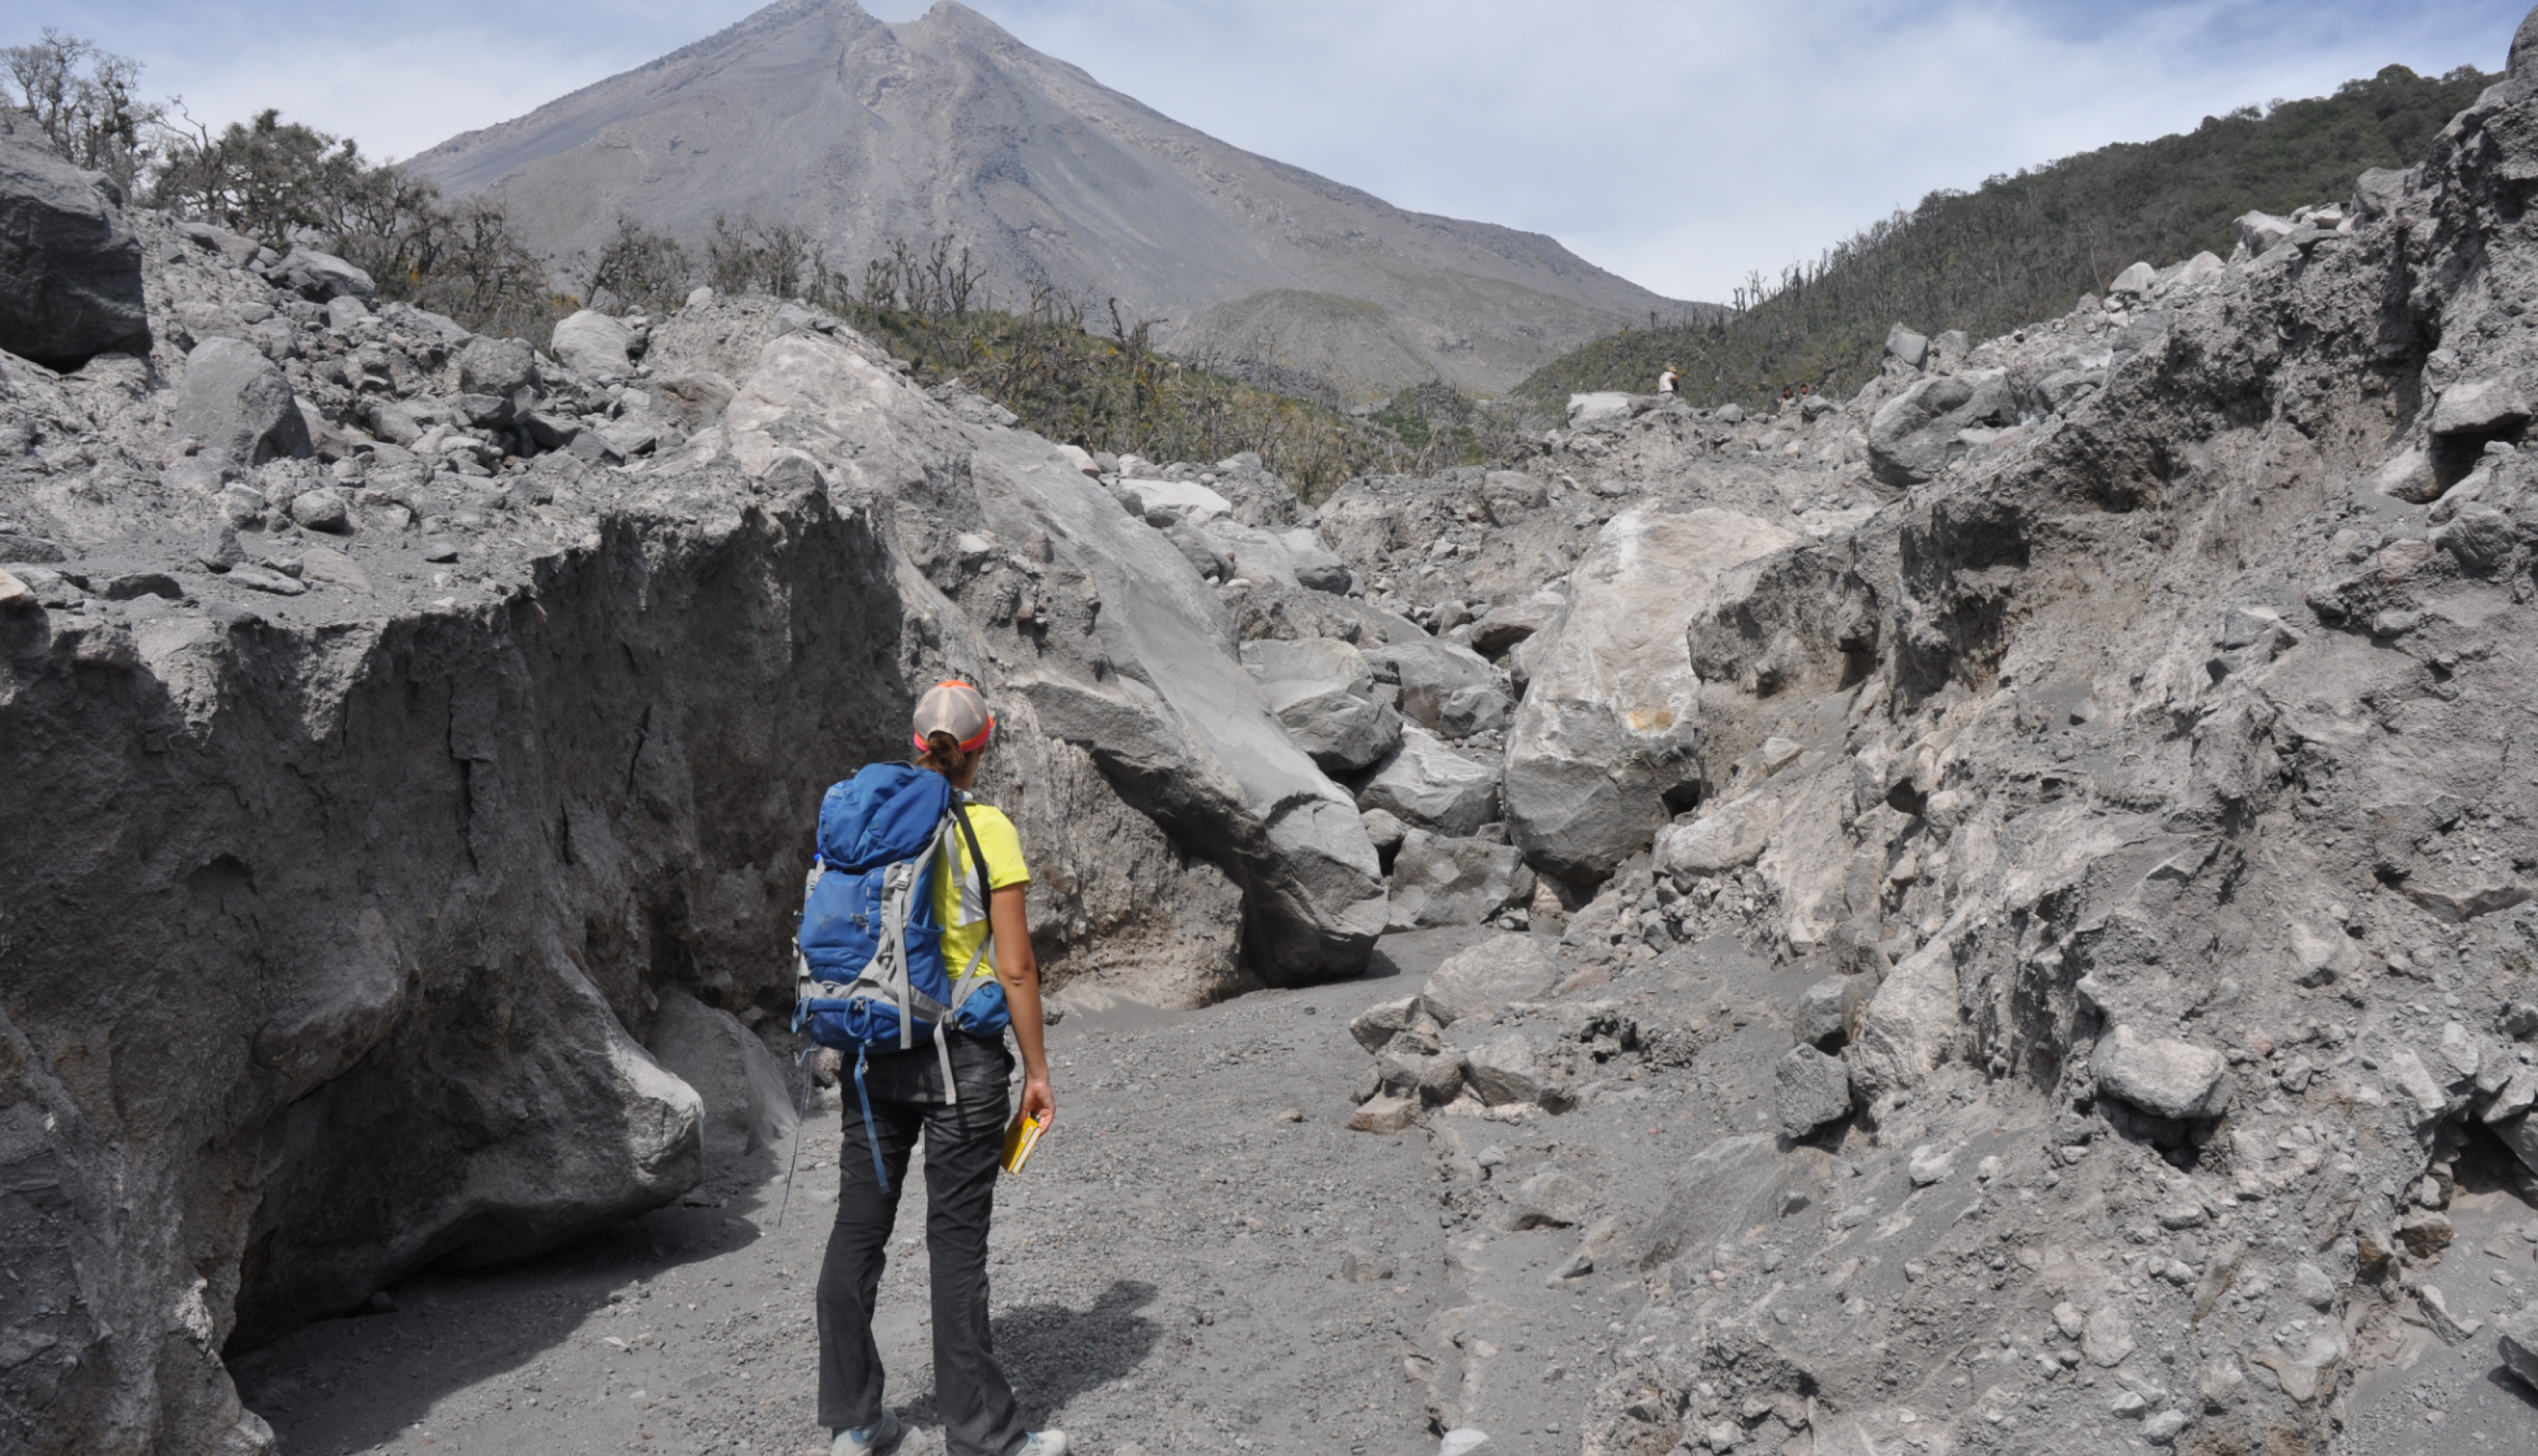 Macorps walks toward the Colima Volcano in Mexico while conducting fieldwork for her Ph.D. in 2016. Credits: Elodie Macorps